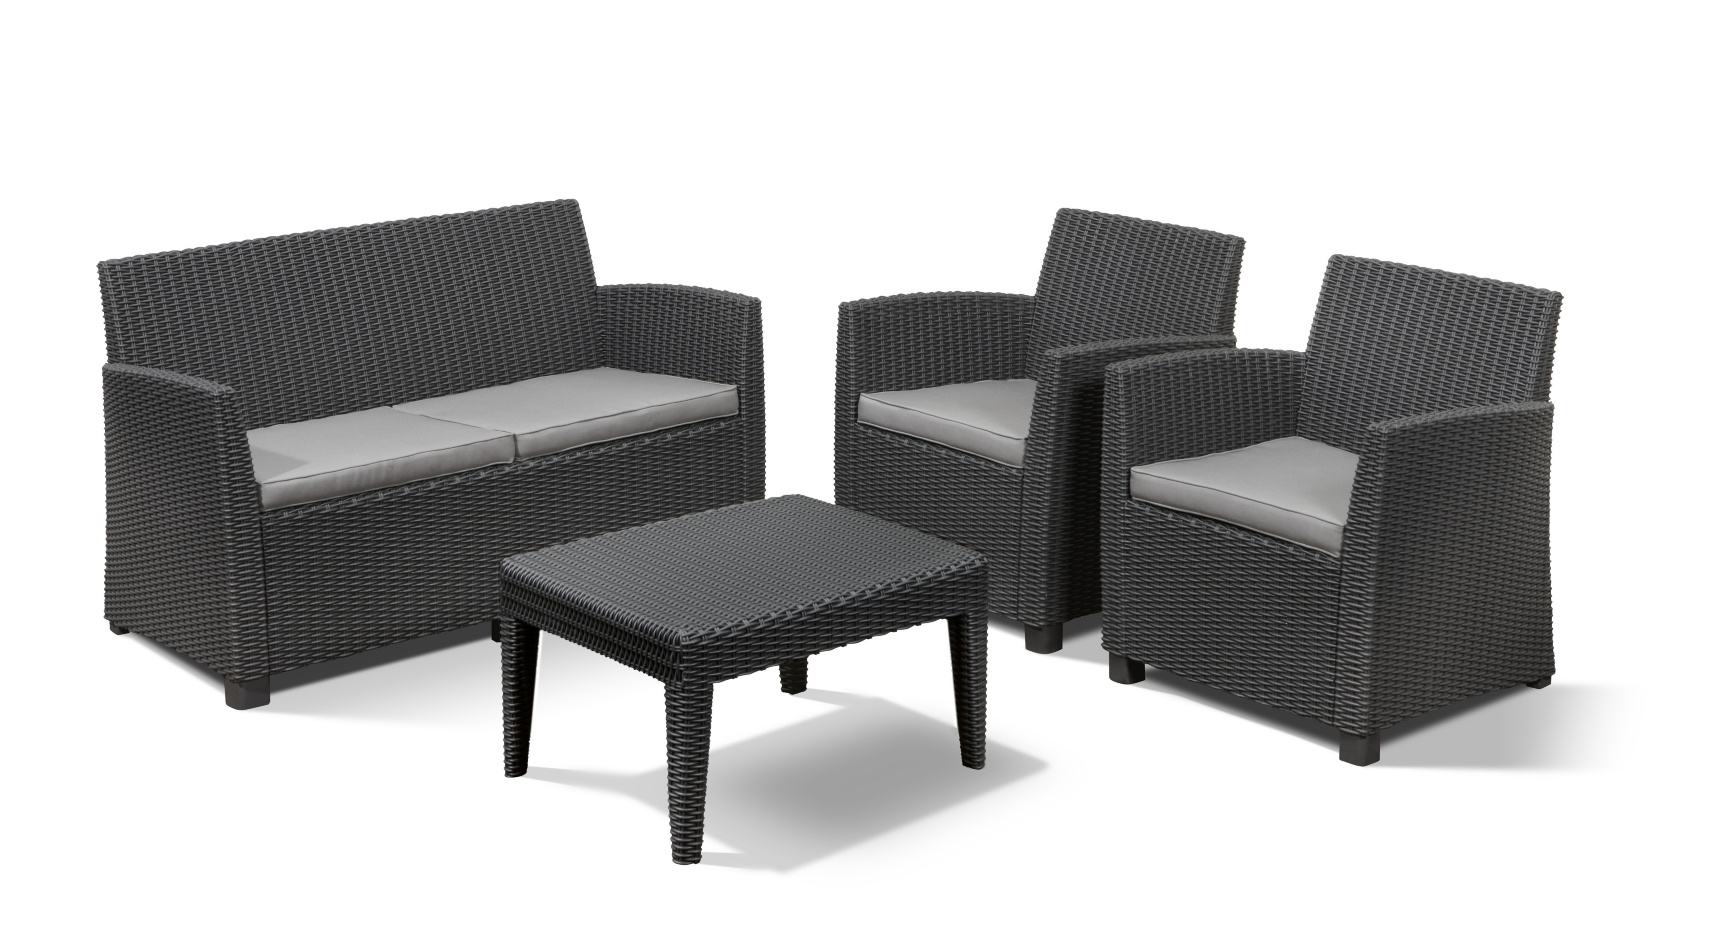 Salon Allibert Allibert Corona Lounge Set Graphite Allibert